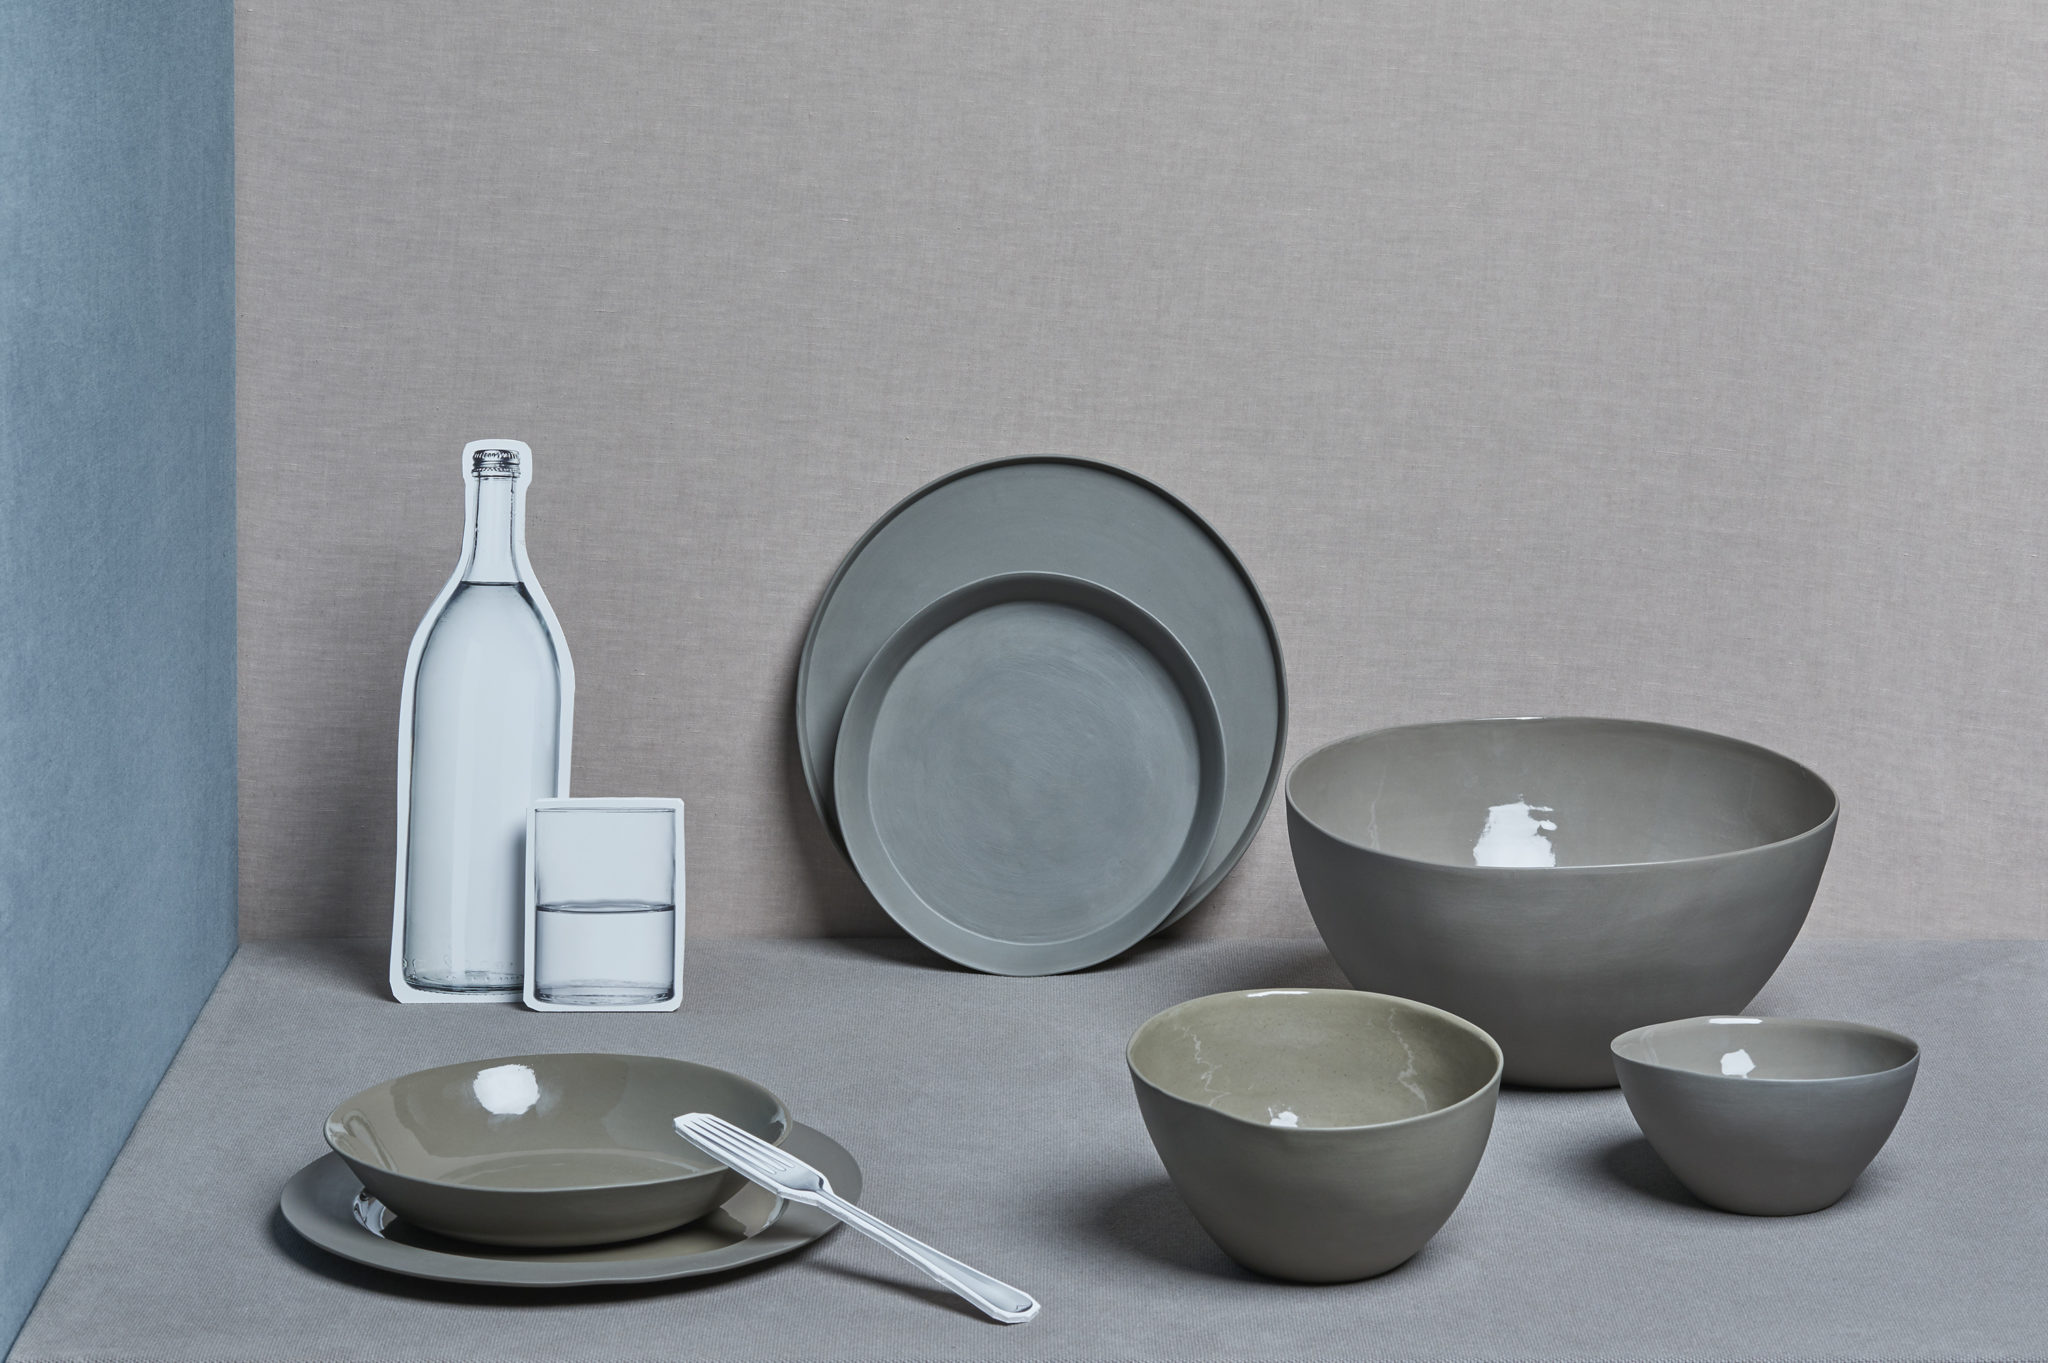 Society Limonta porcelain tableware in smoky grey. Bowls from £55